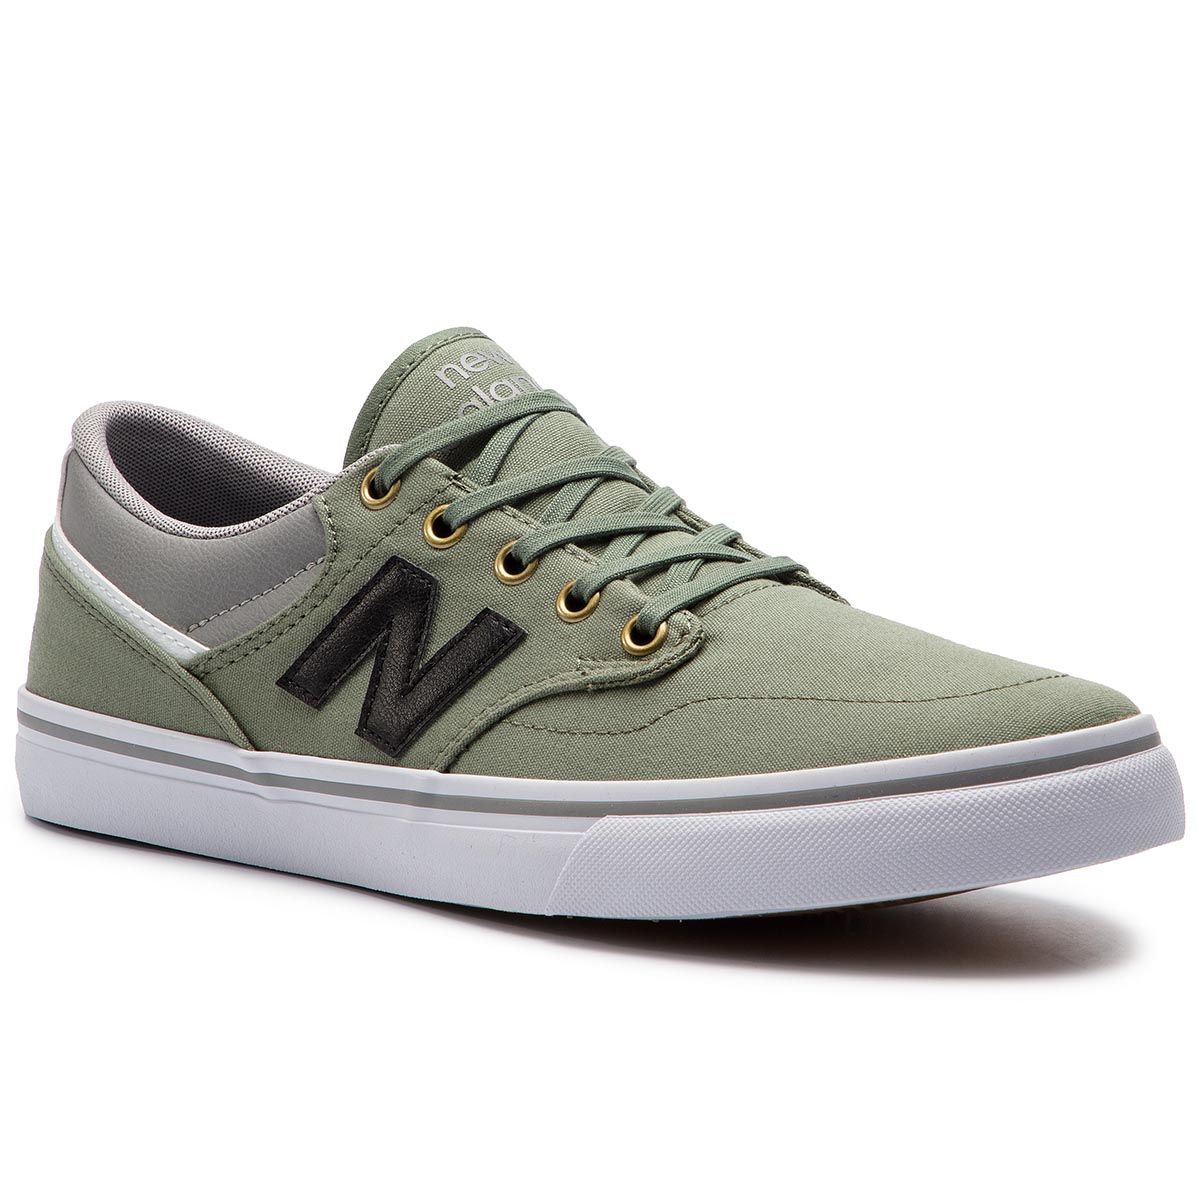 Teniși NEW BALANCE - AM331OLG Verde